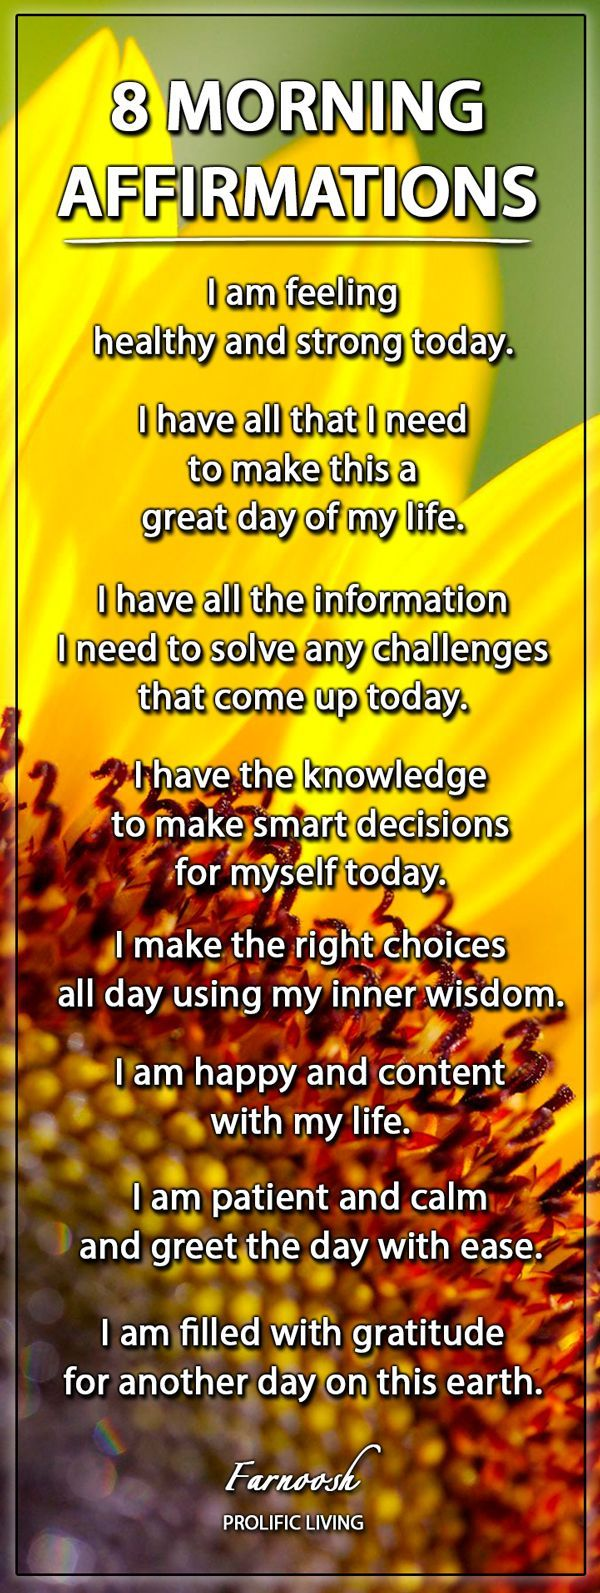 morningaffirmations